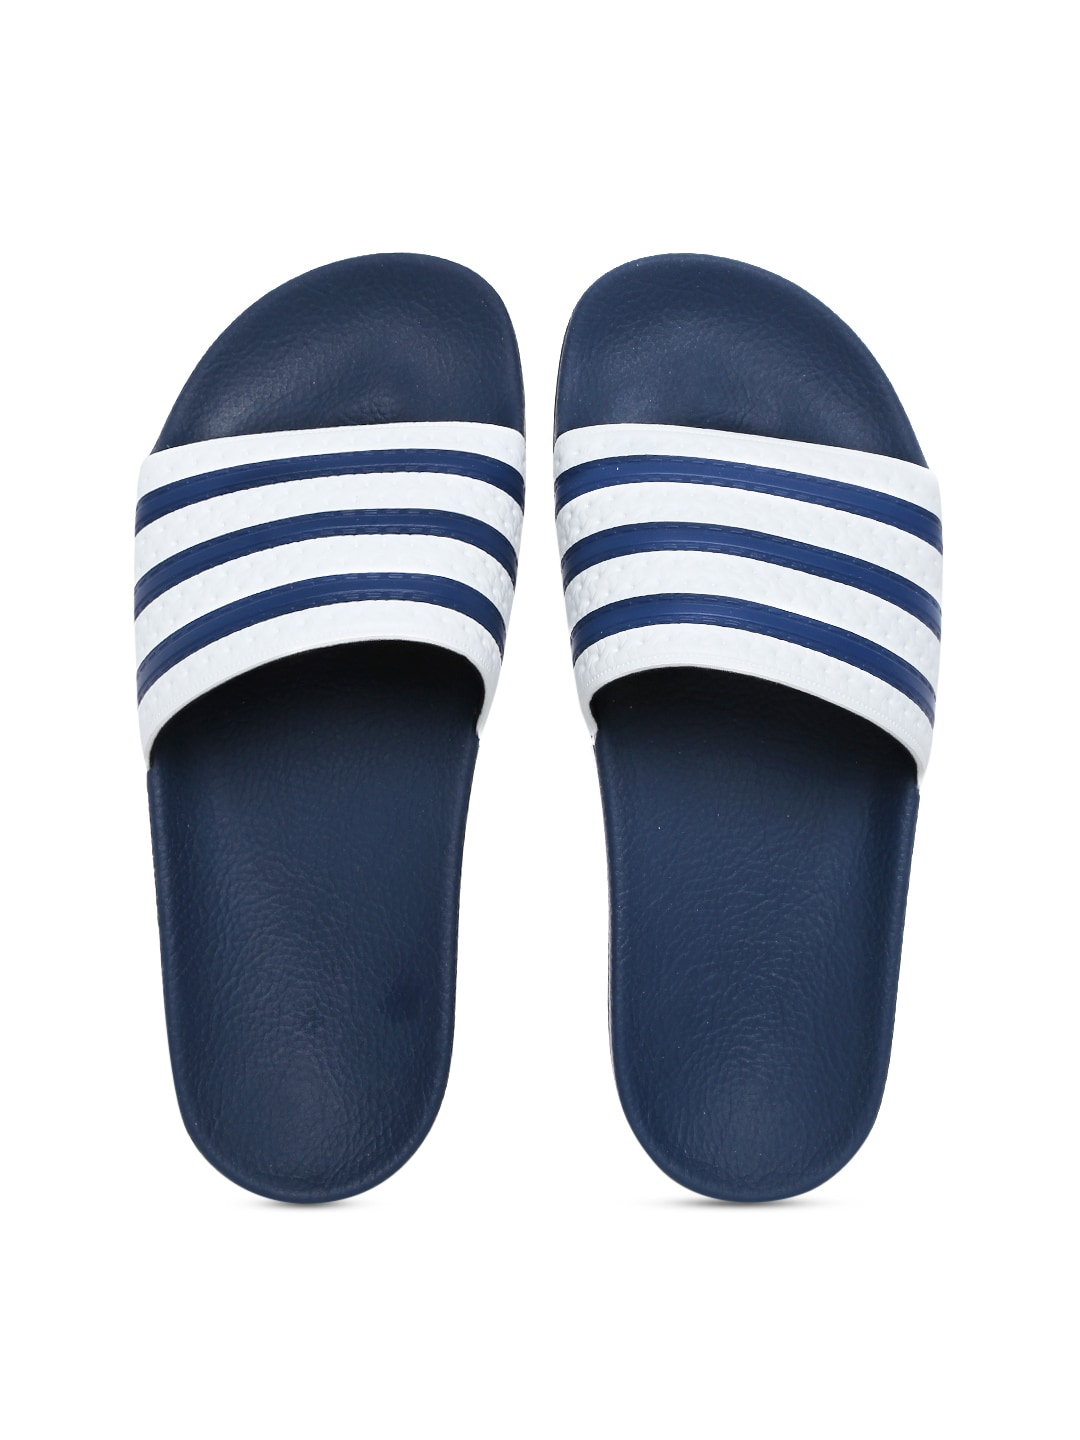 Men Online Adidas Flip Buy Adidas for Flops Flip Flops Men's India in wO80knP